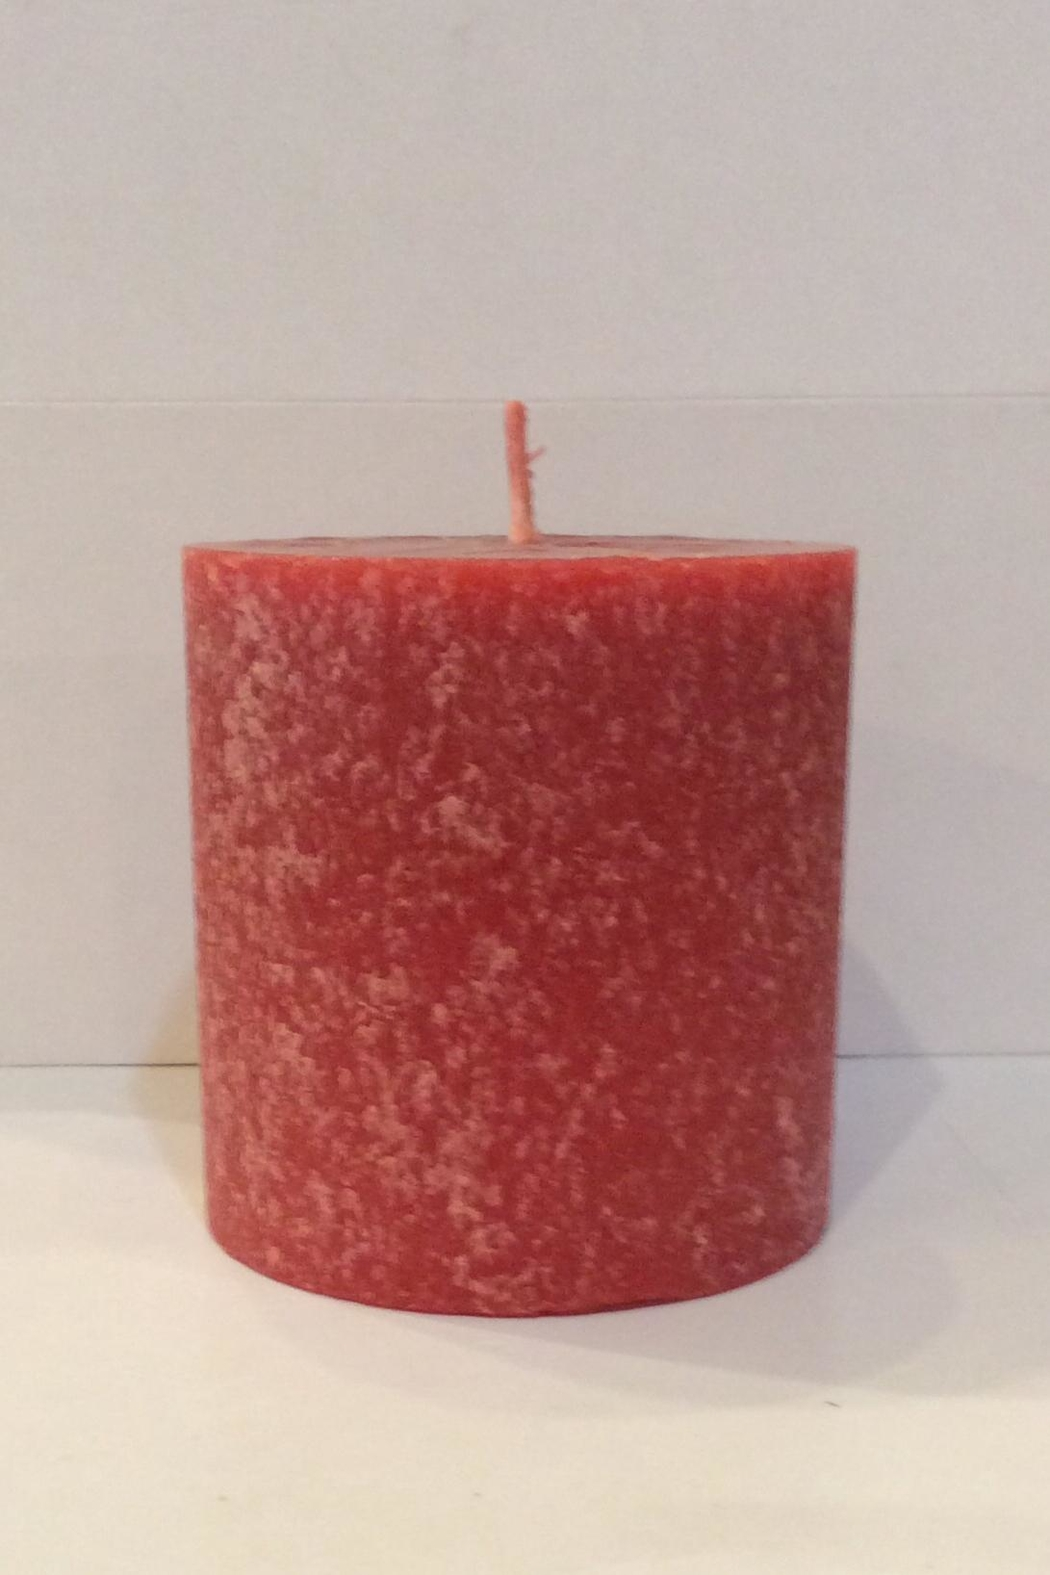 A.I. Root Candle Co. Cinnamon 3x3 - Main Image